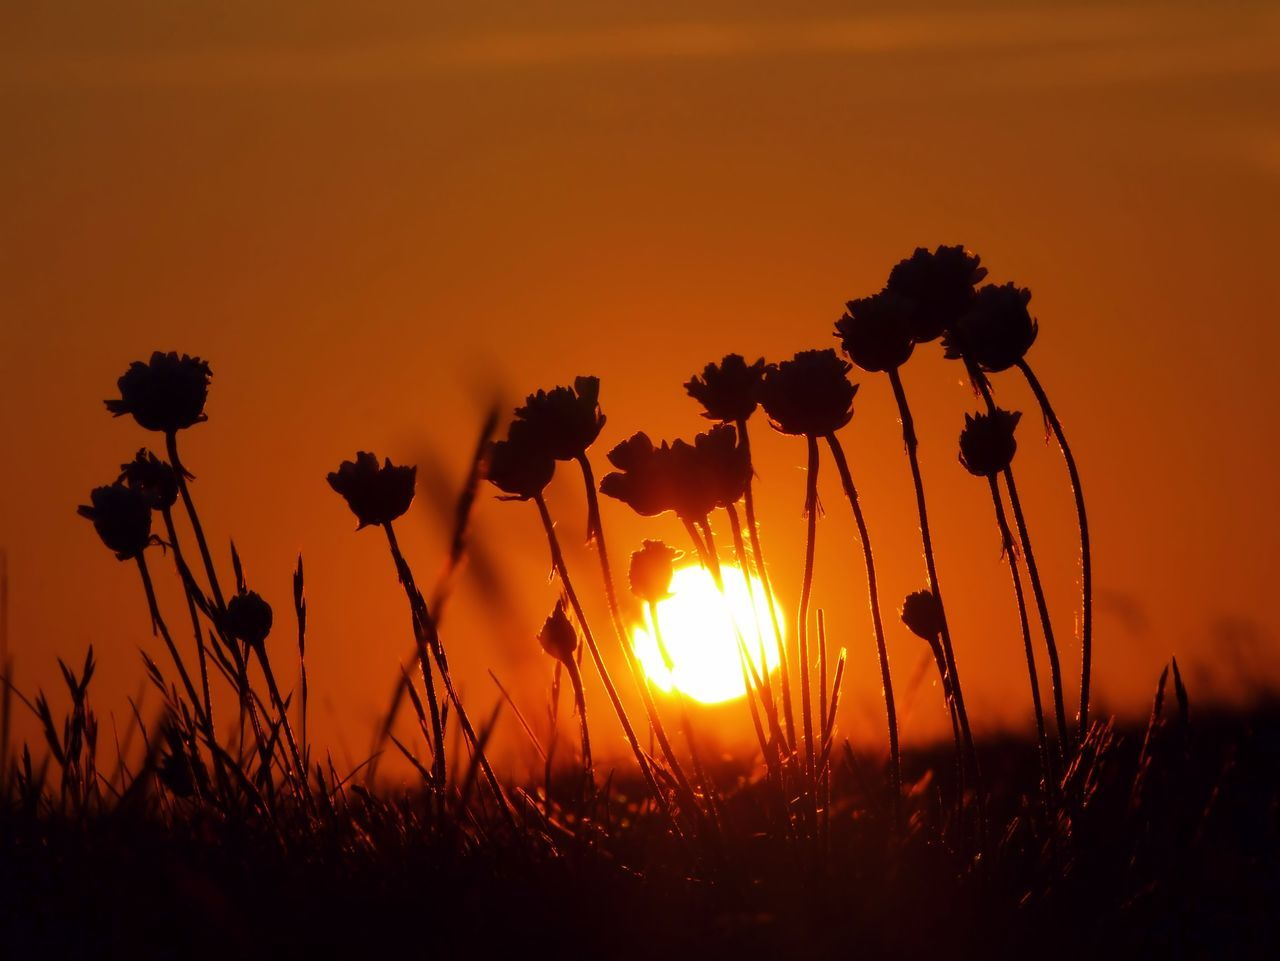 Low Angle View Of Silhouette Flowers On Field During Sunset